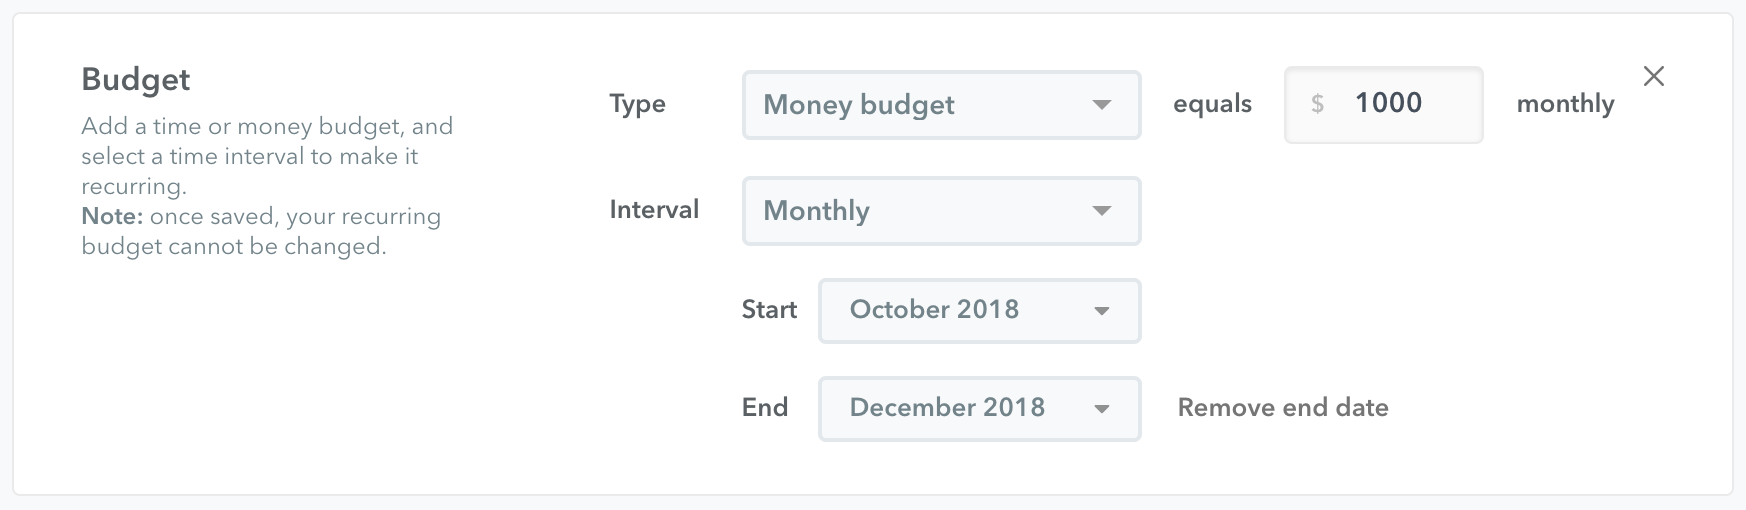 budget-section